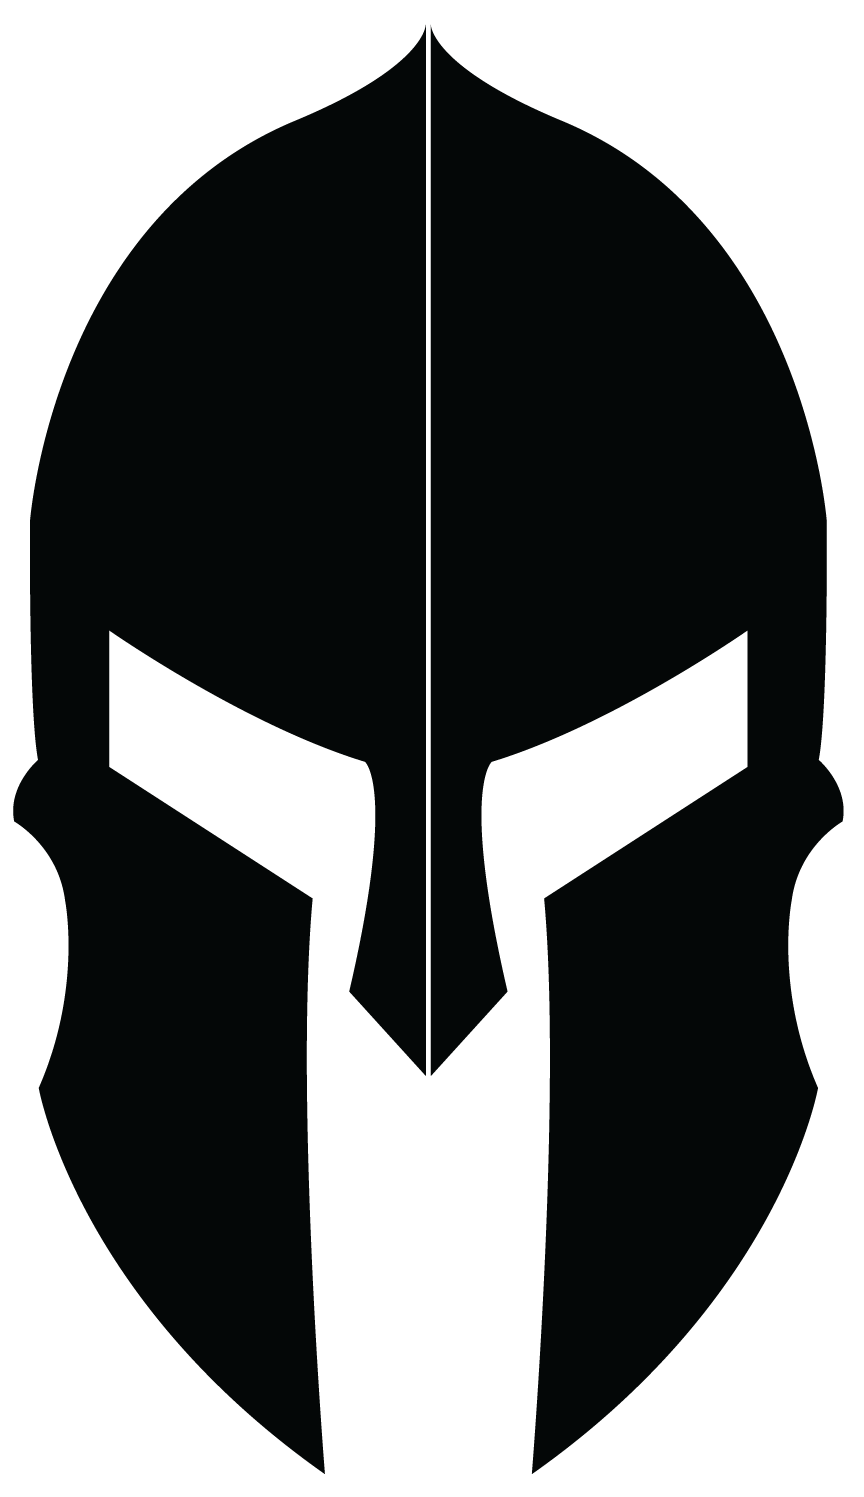 Logo design for Spartan Helmet.